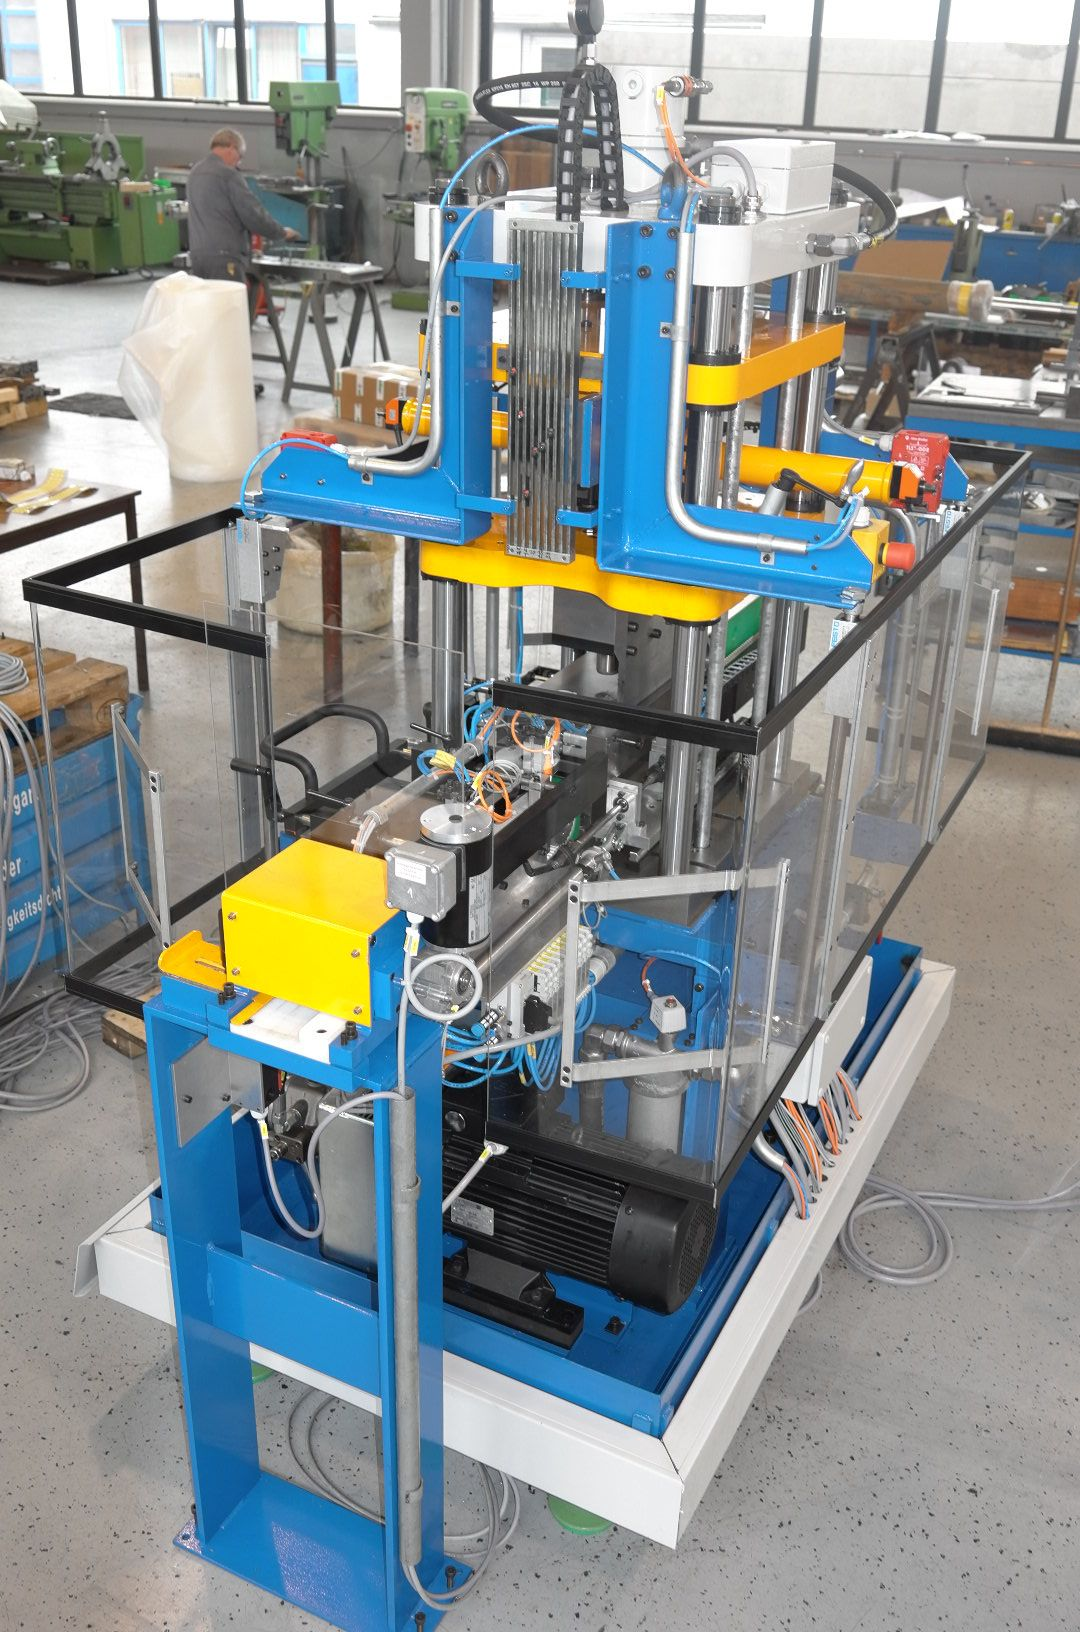 Bending press for metal fittings